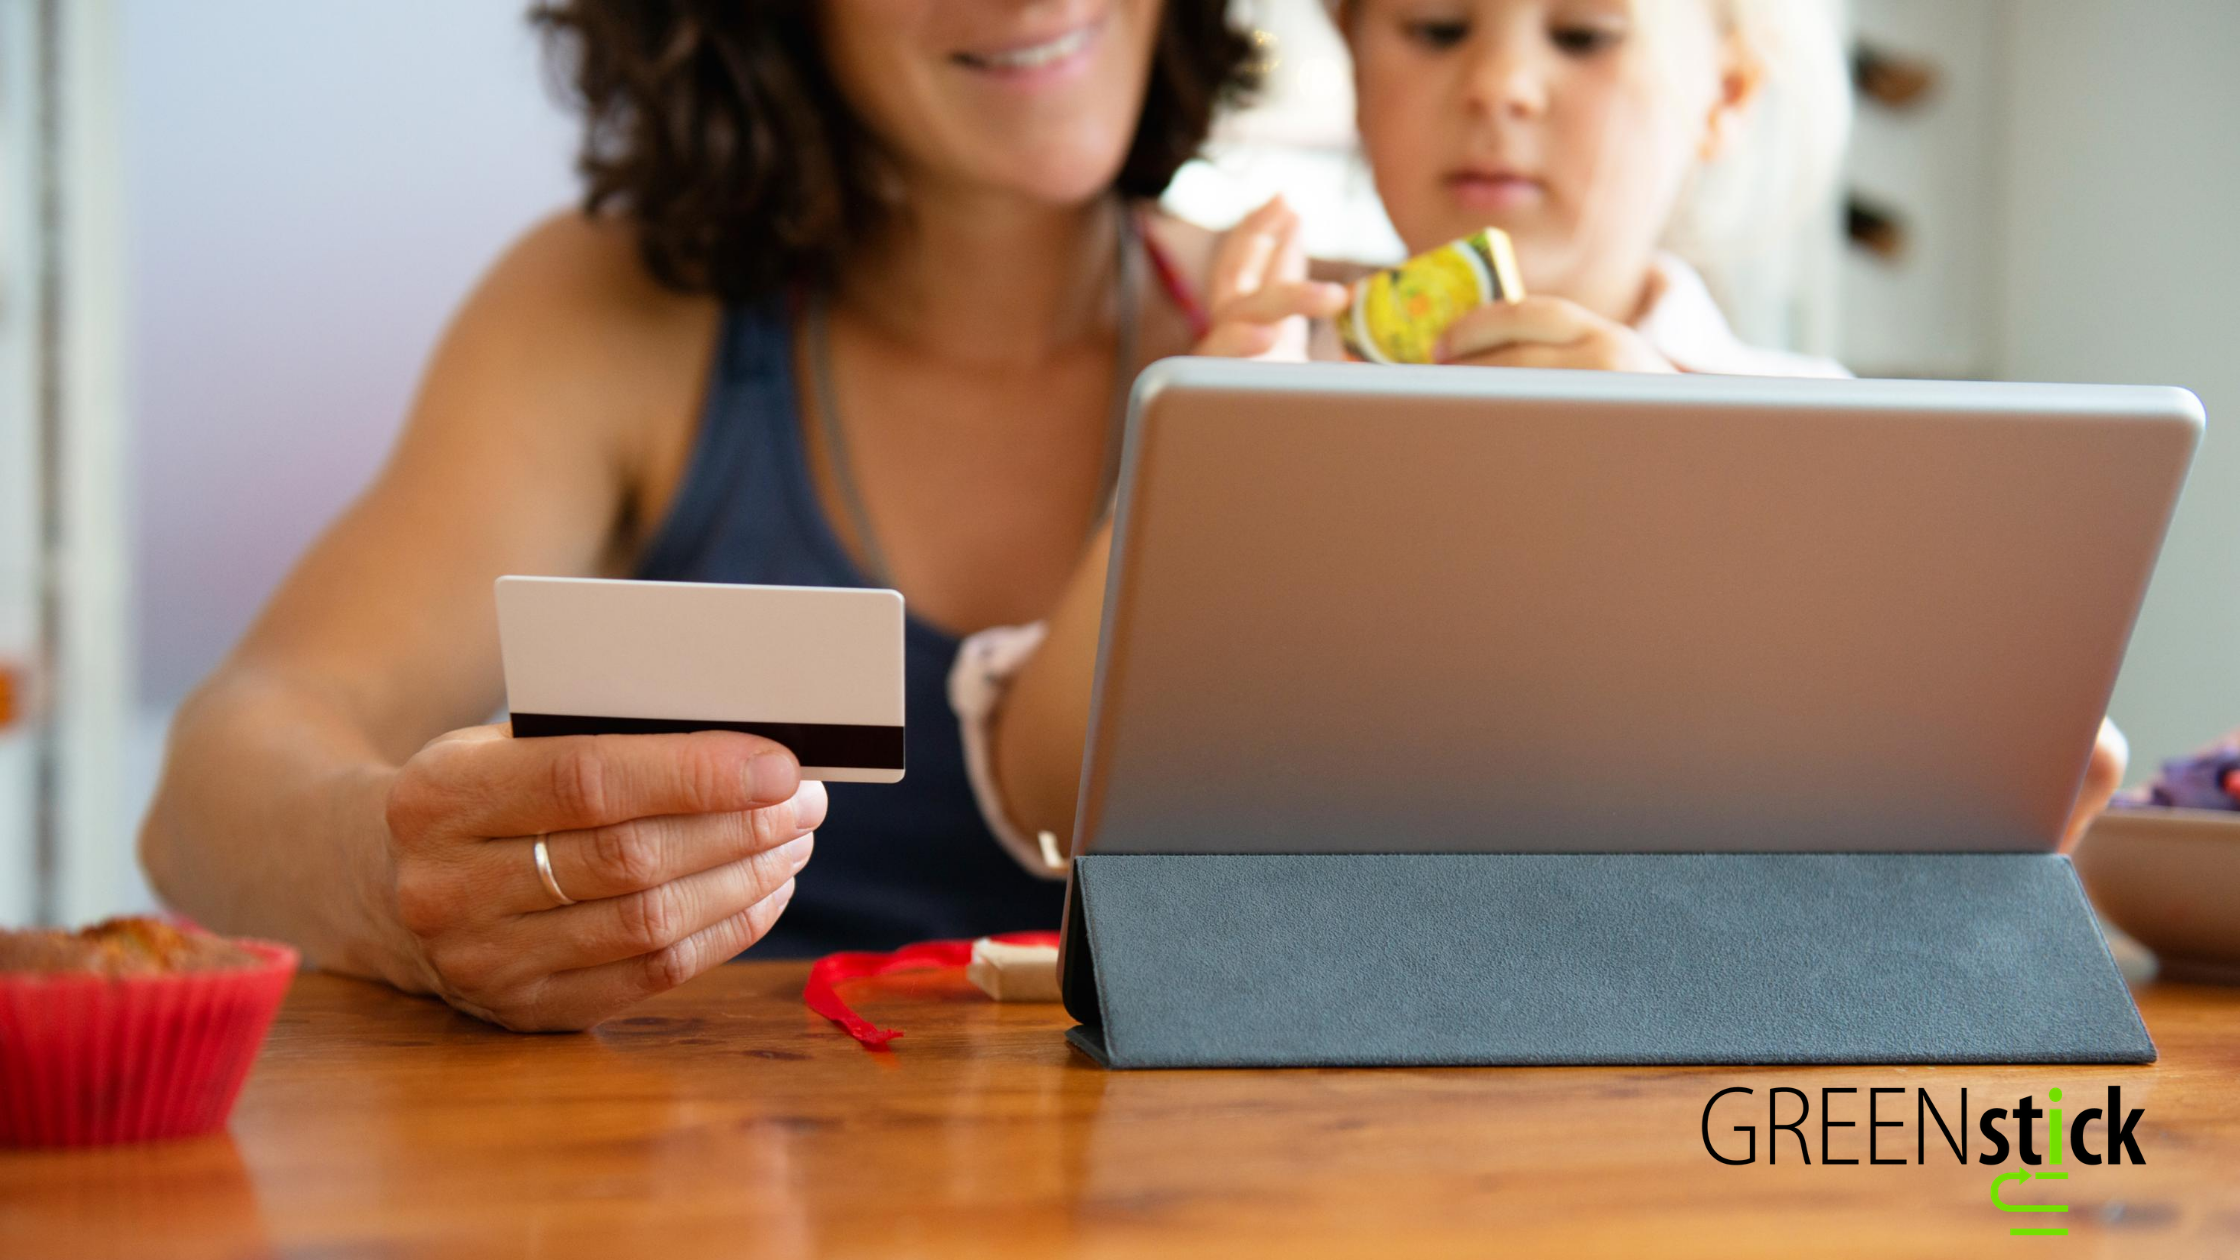 Adult women and baby girl shopping online on an ipad using a business gift card to complete their purchase.